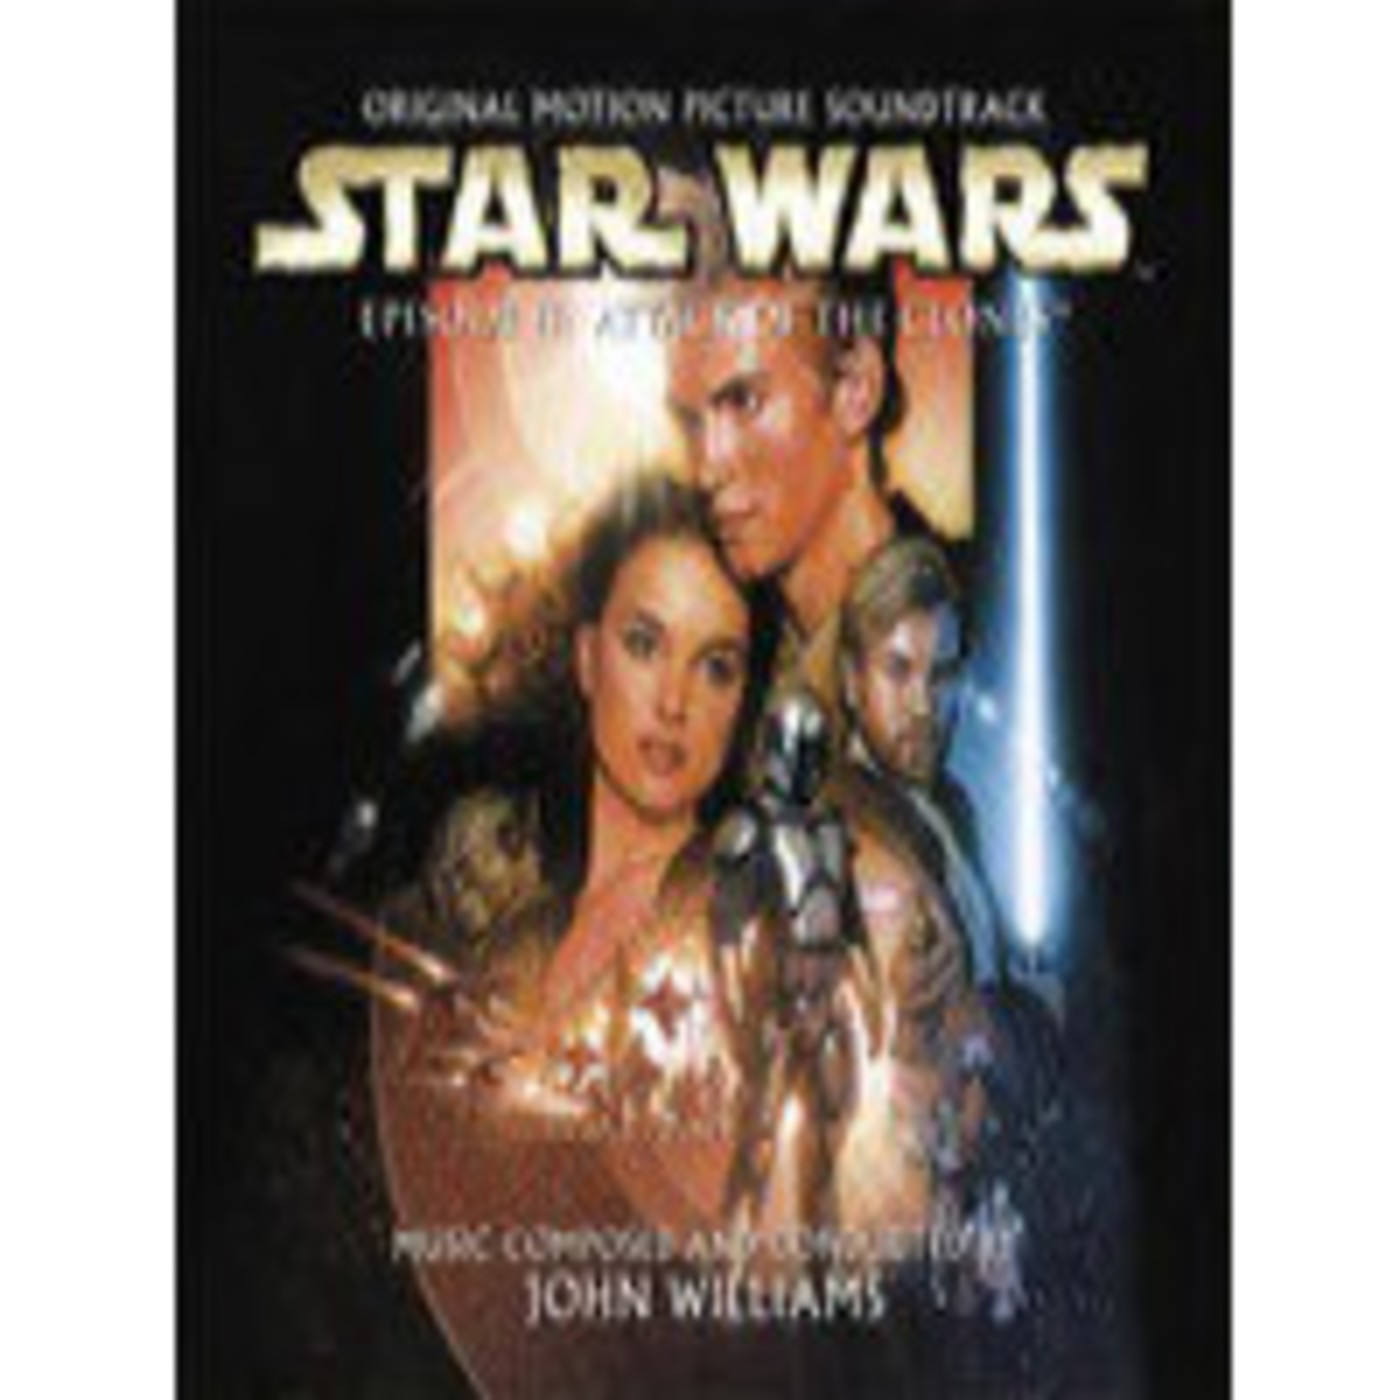 Bandas sonoras para recordar (40): Star Wars (Precuelas) Episode II: El Ataque de los Clones (Attack of the Clones)